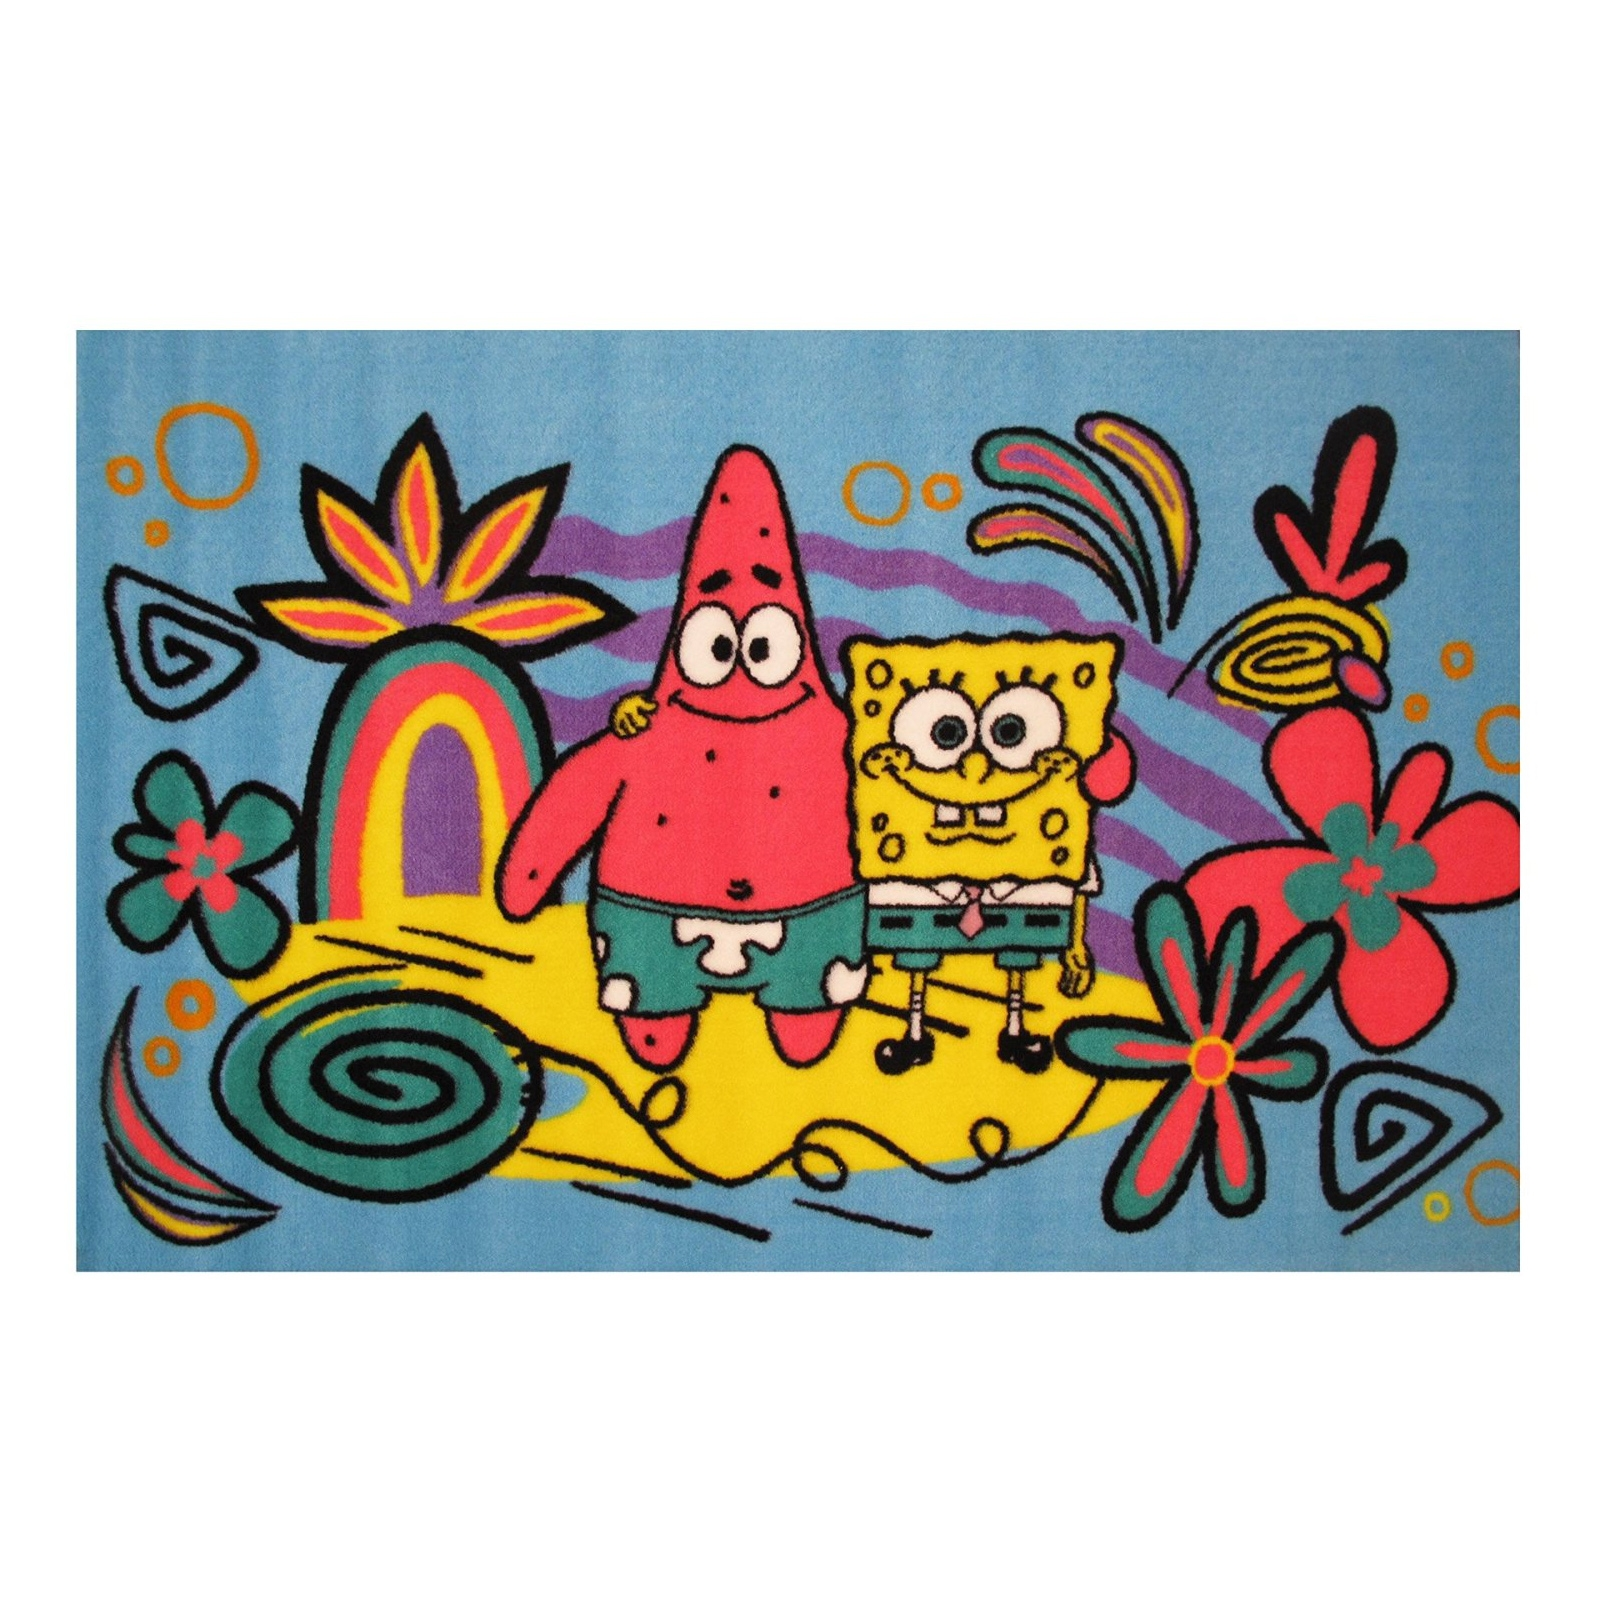 Spongebob and Patrick Bikini Bottom Fun Rug